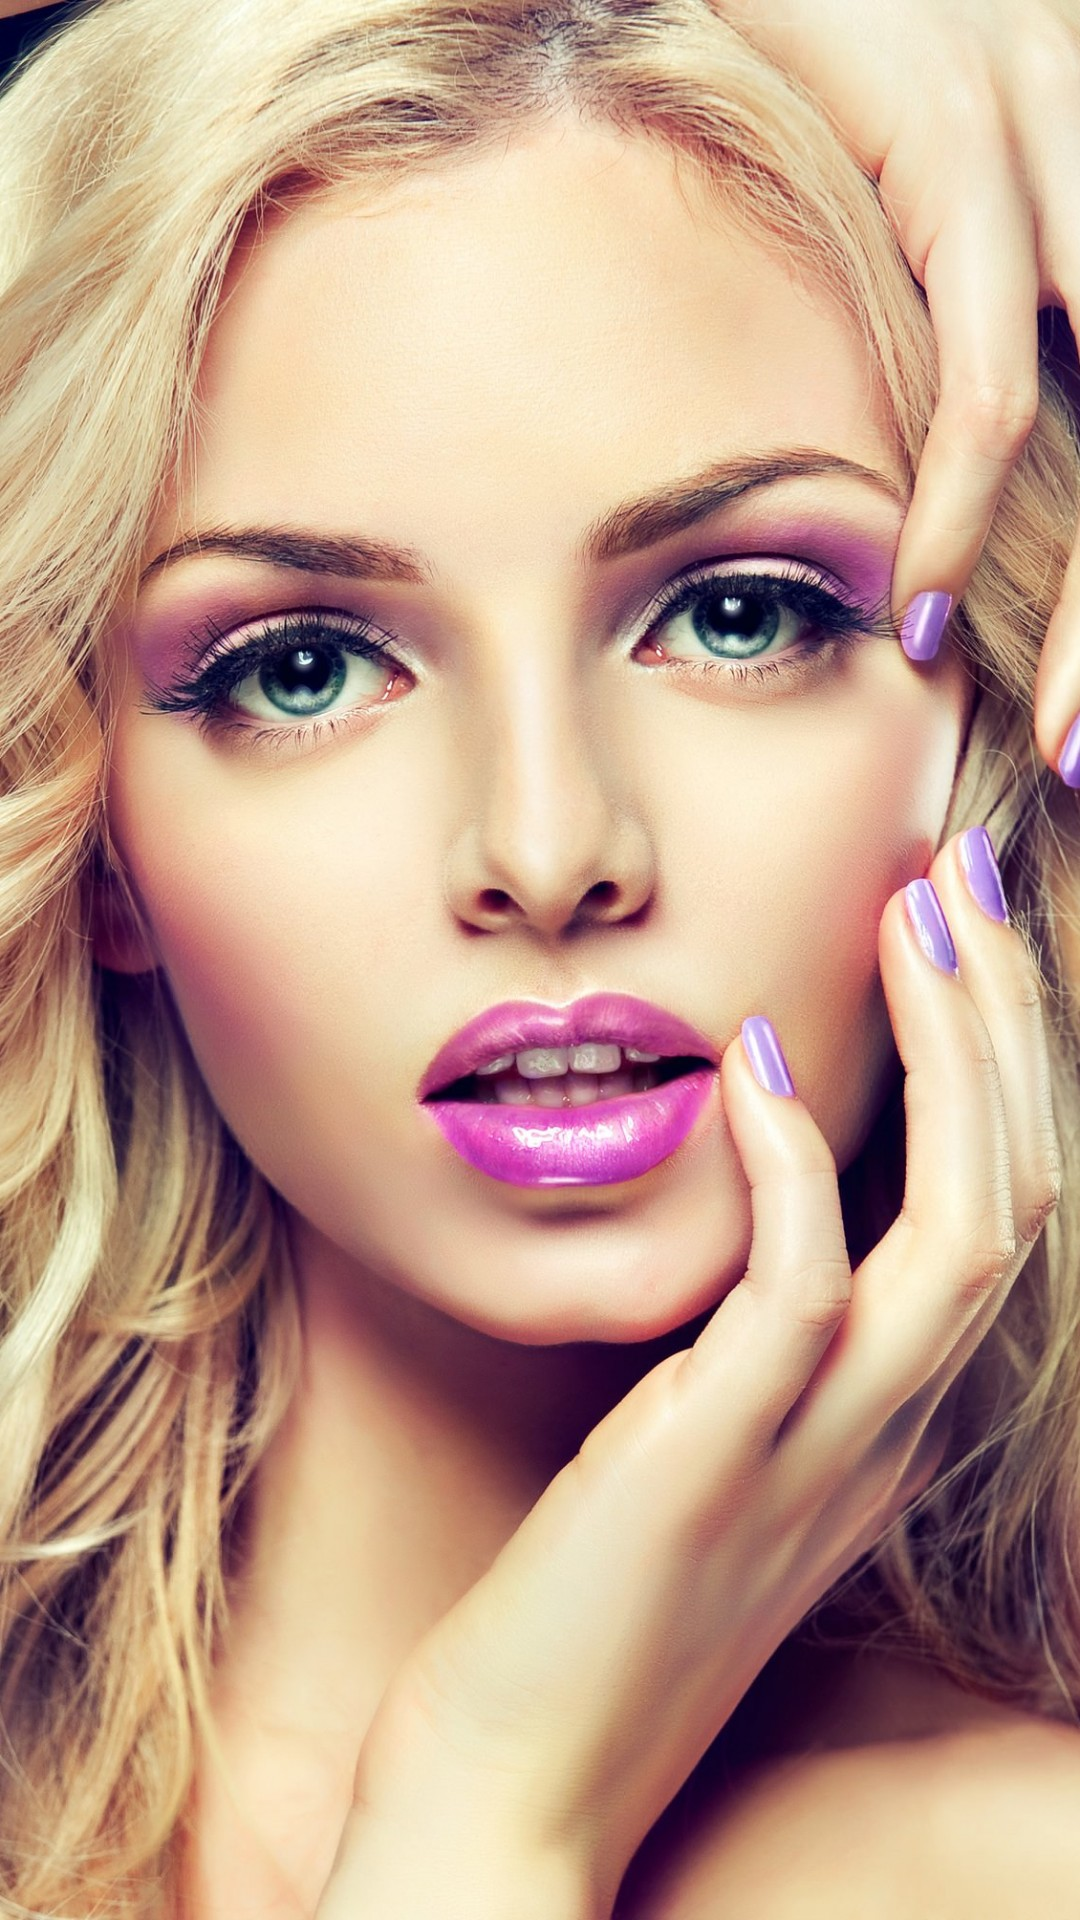 Beautiful Blonde Girl With Lilac Makeup Wallpaper for SAMSUNG Galaxy S5